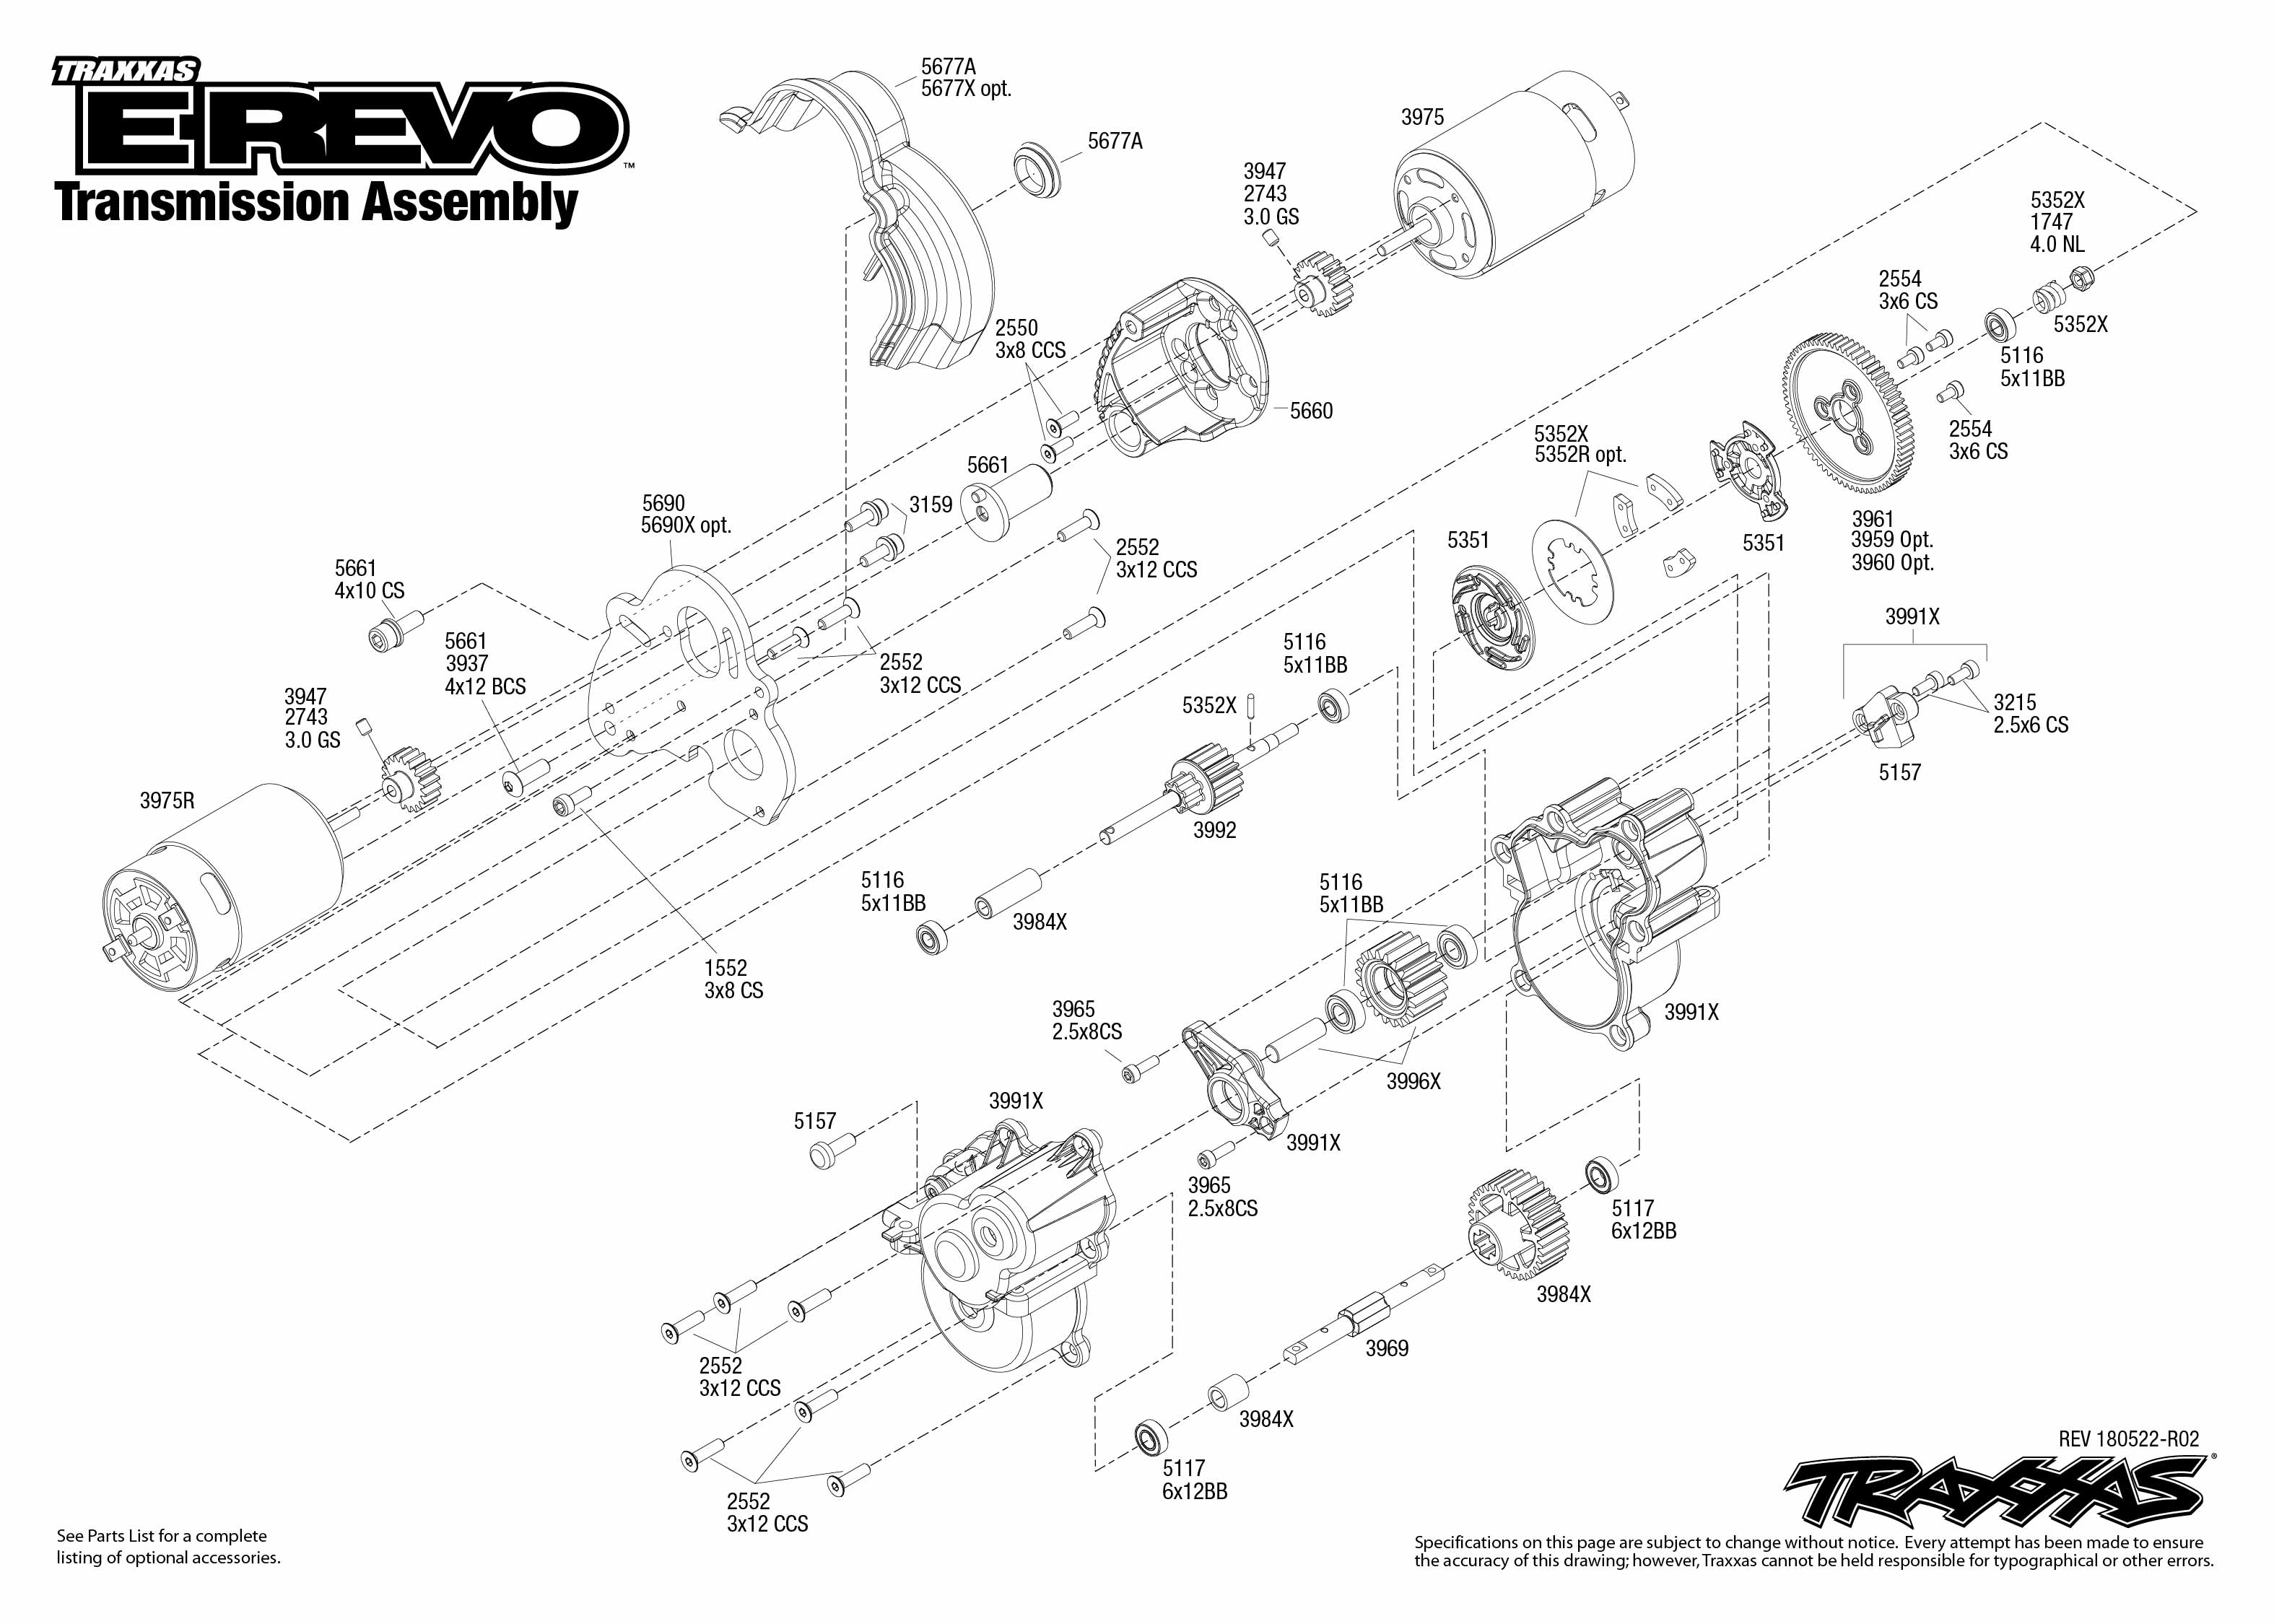 E Revo 1 Transmission Assembly Exploded View